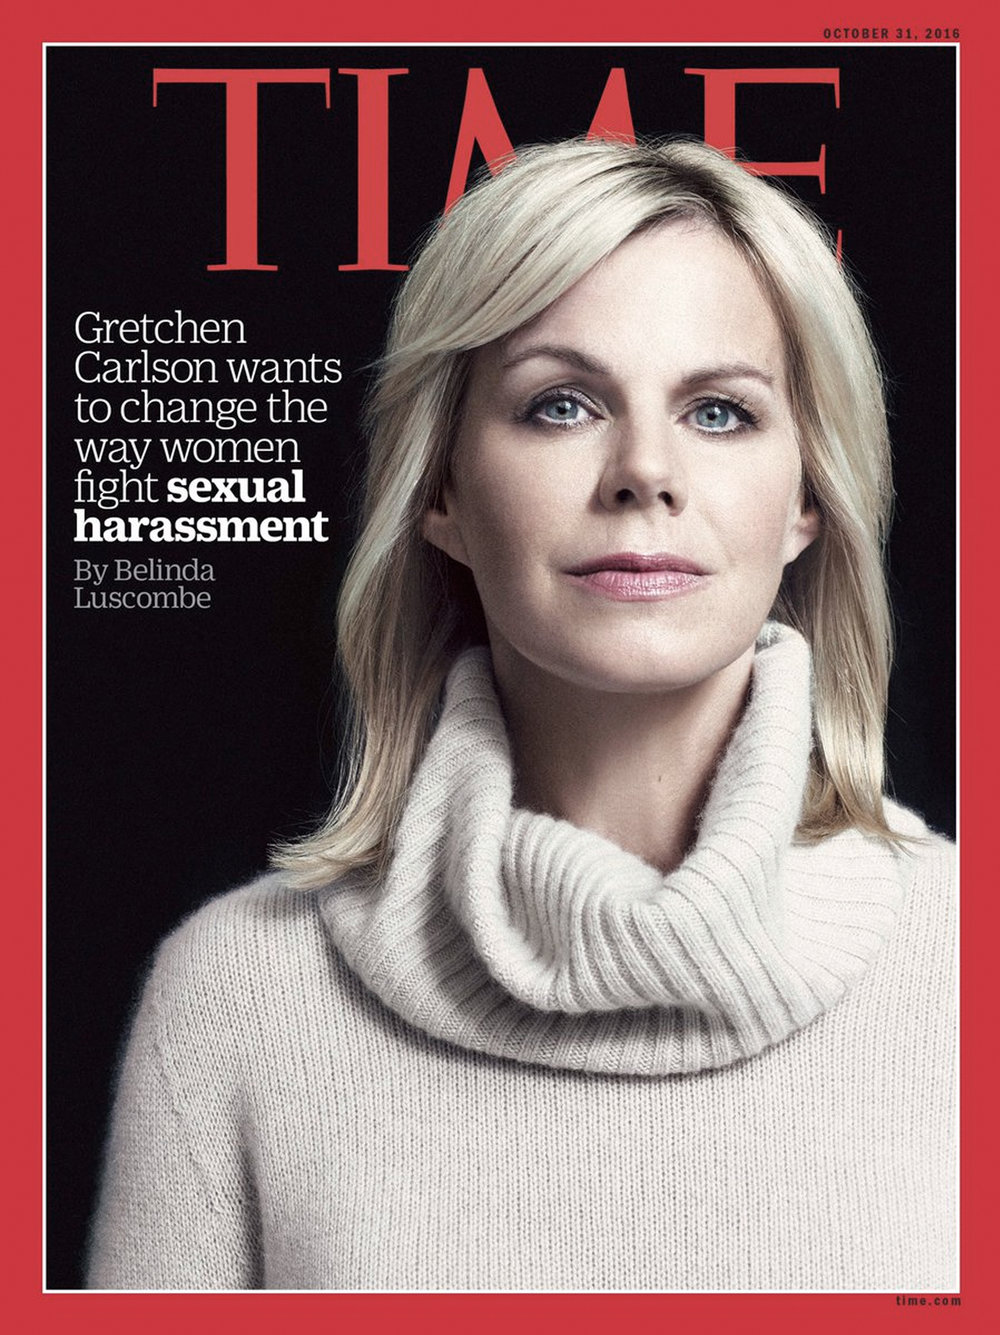 Time's cover of Gretchen Carlson